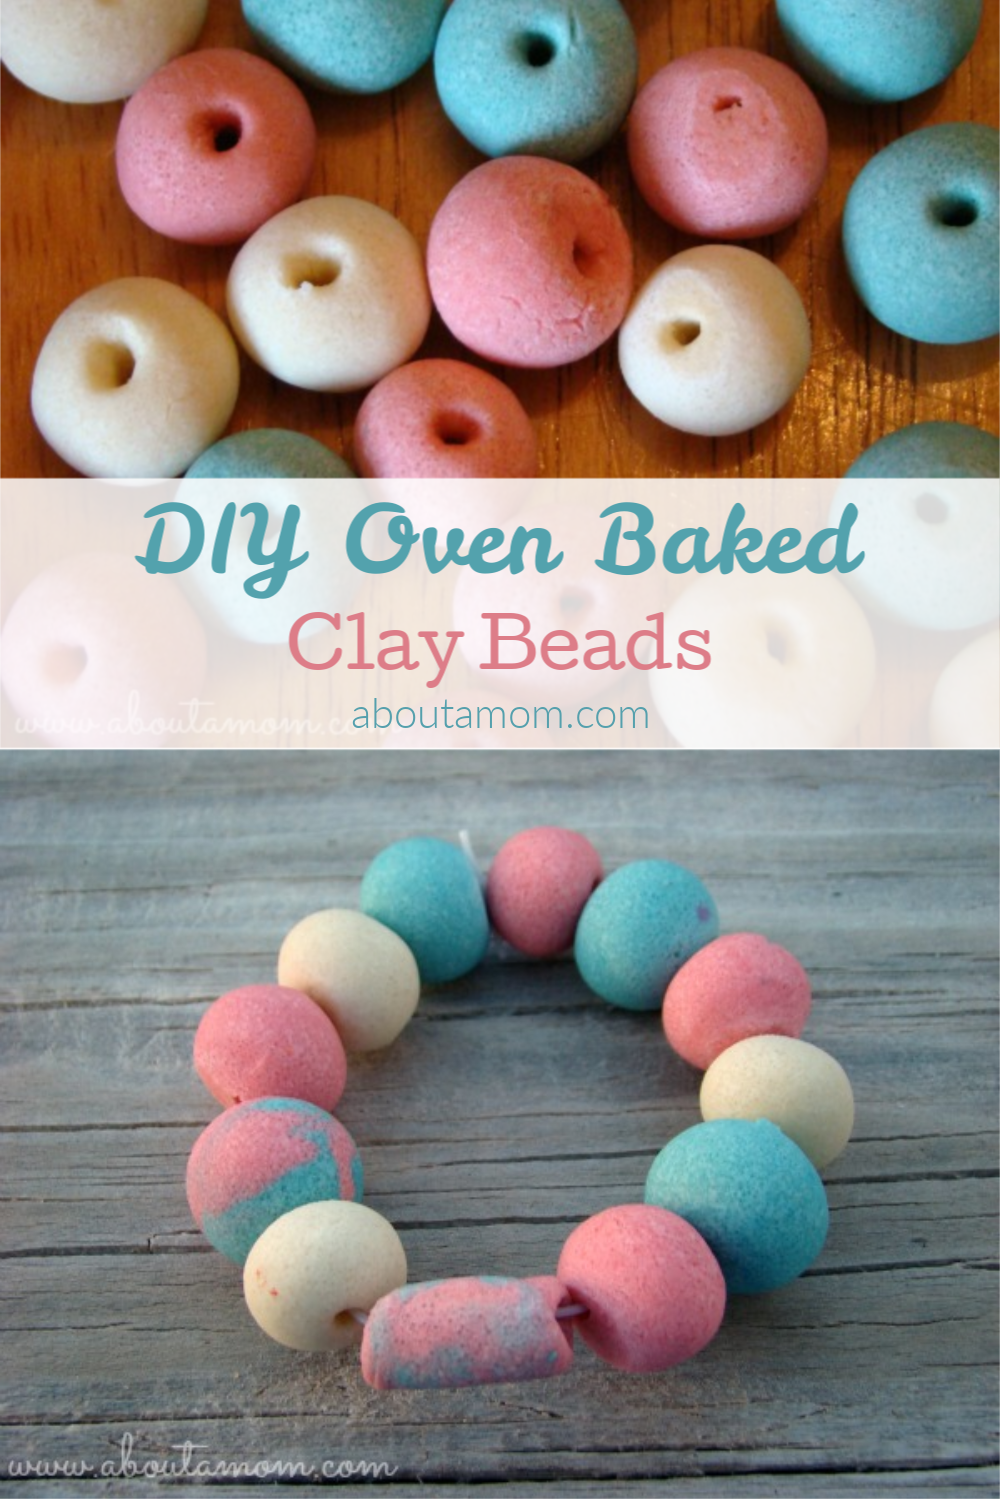 Are you feeling the pressure to come up with activities to keep the kids busy this summer? These DIY oven baked clay beads are a terrific summertime boredom buster, and is the perfect activity for a hot day when you want to stay indoors.